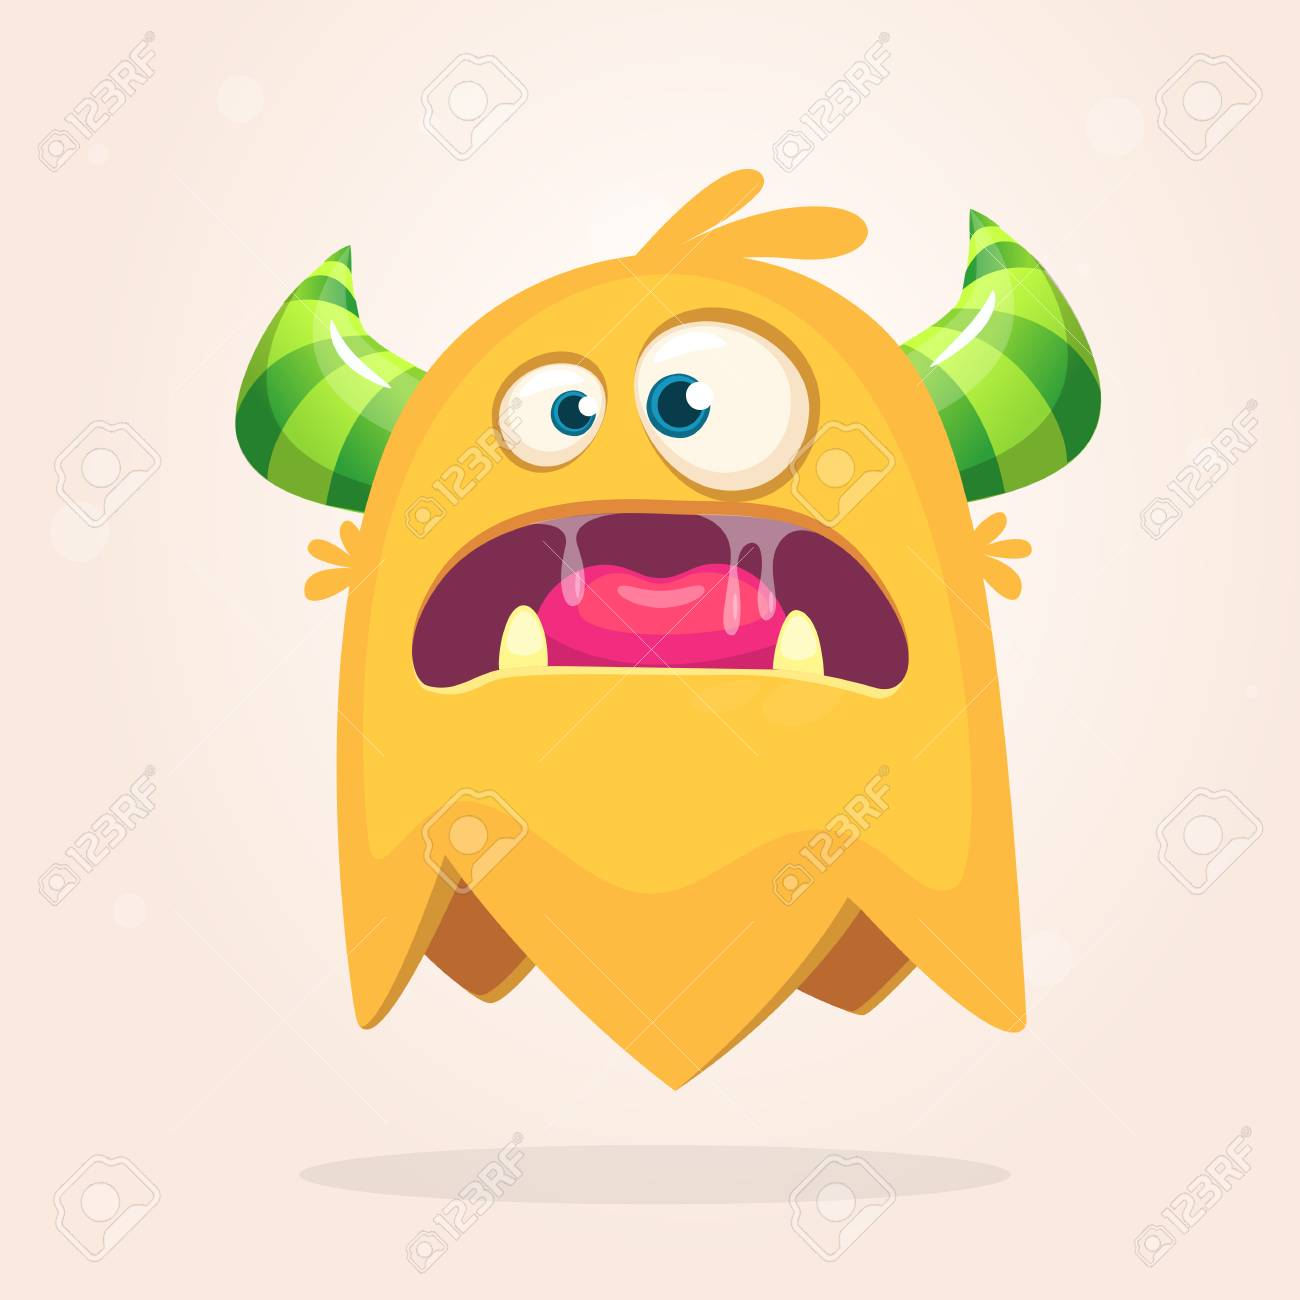 Angry Orange Cartoon Monster With Horns Big Collection Of Cute Royalty Free Cliparts Vectors And Stock Illustration Image 85468747